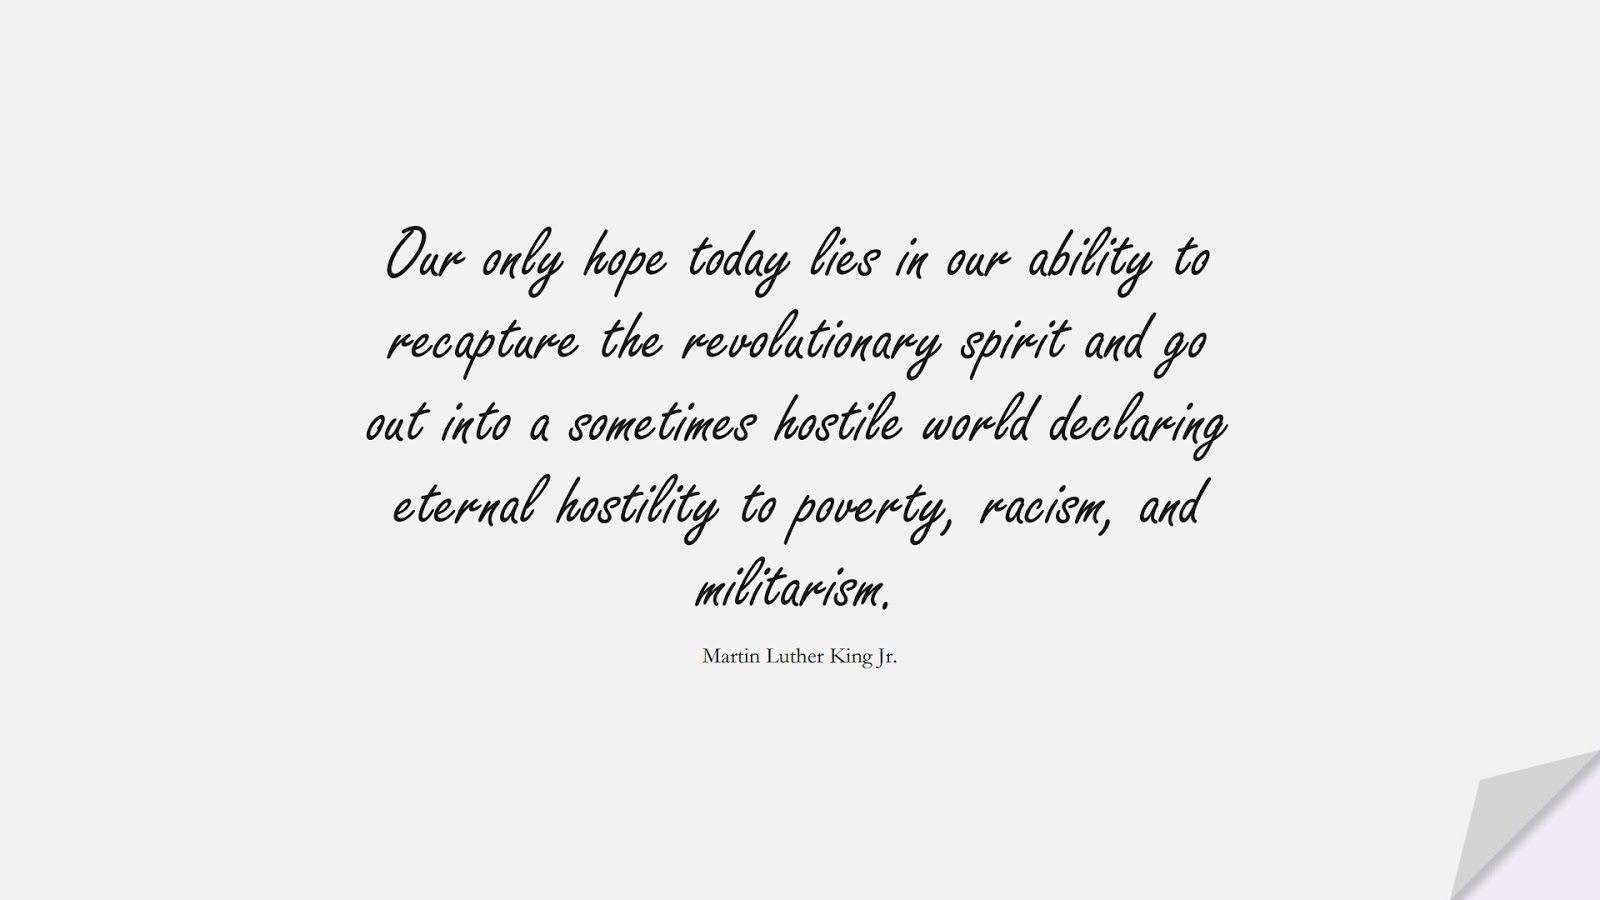 Our only hope today lies in our ability to recapture the revolutionary spirit and go out into a sometimes hostile world declaring eternal hostility to poverty, racism, and militarism. (Martin Luther King Jr.);  #MartinLutherKingJrQuotes